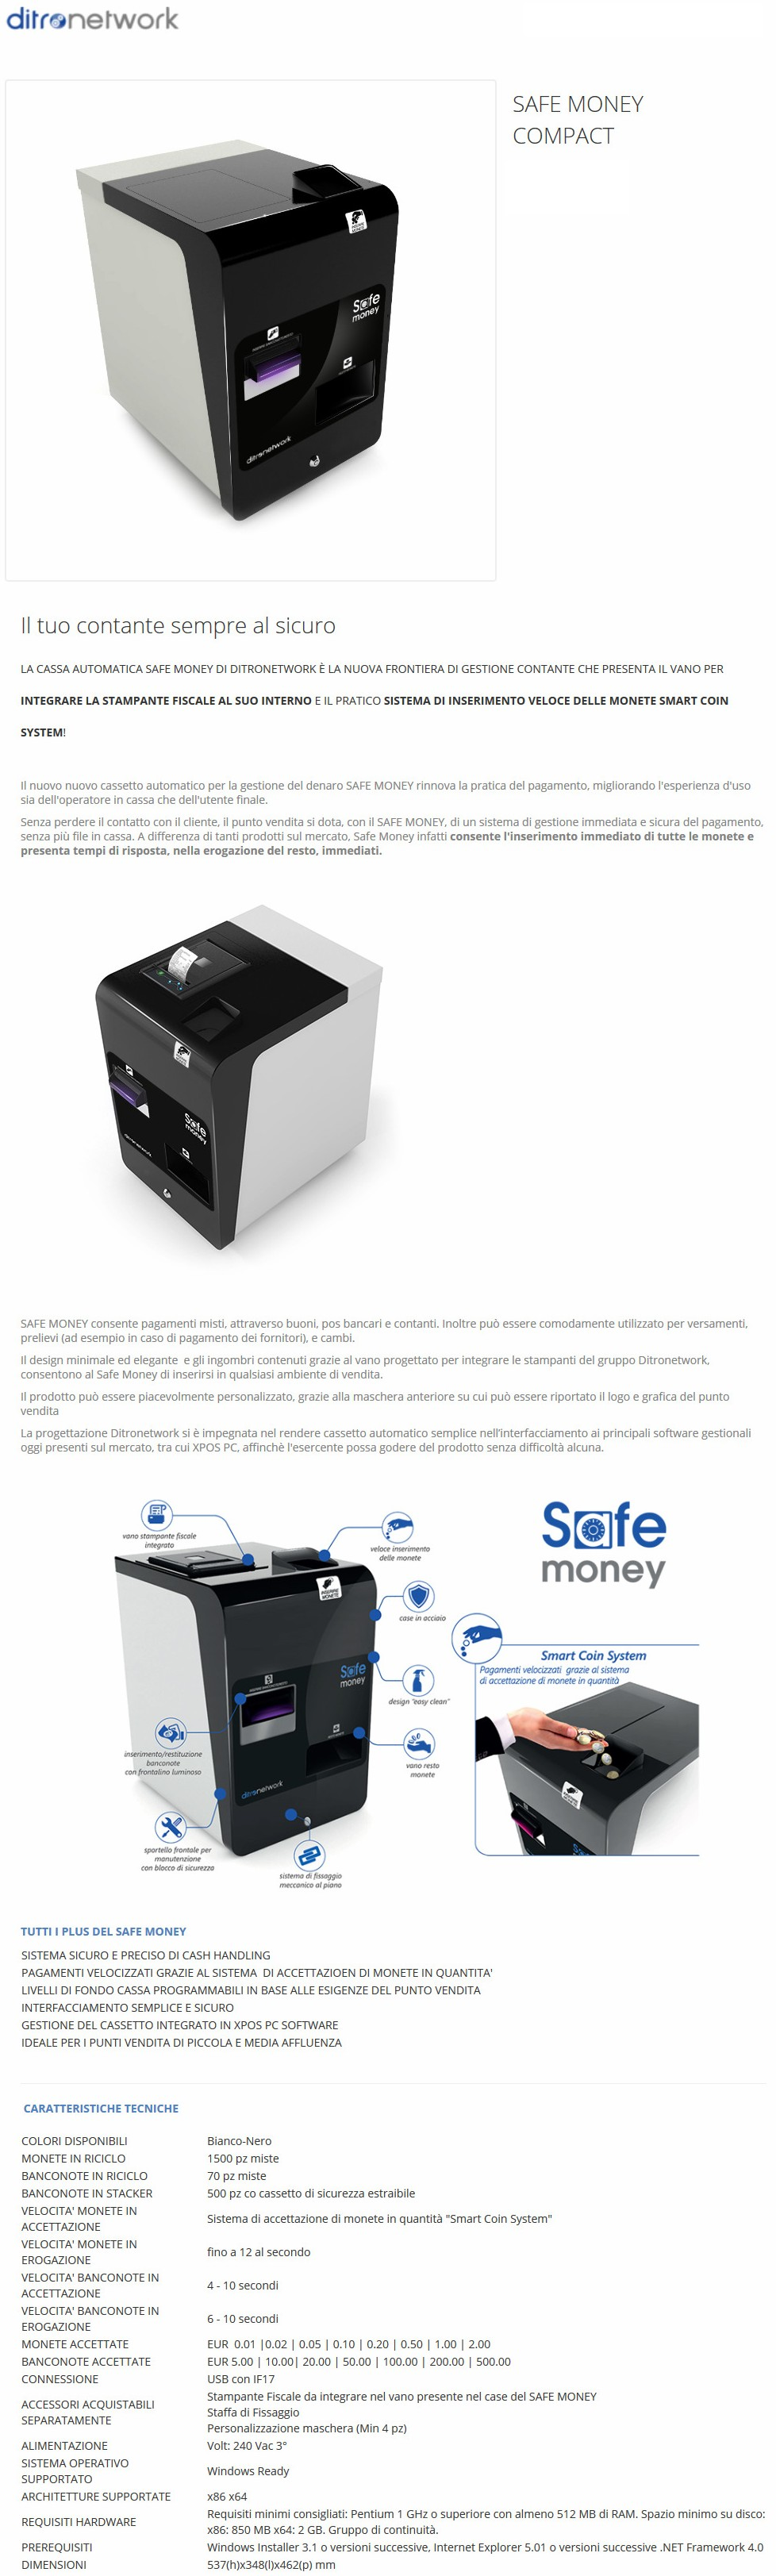 Safemoney Compact Ditronetwork